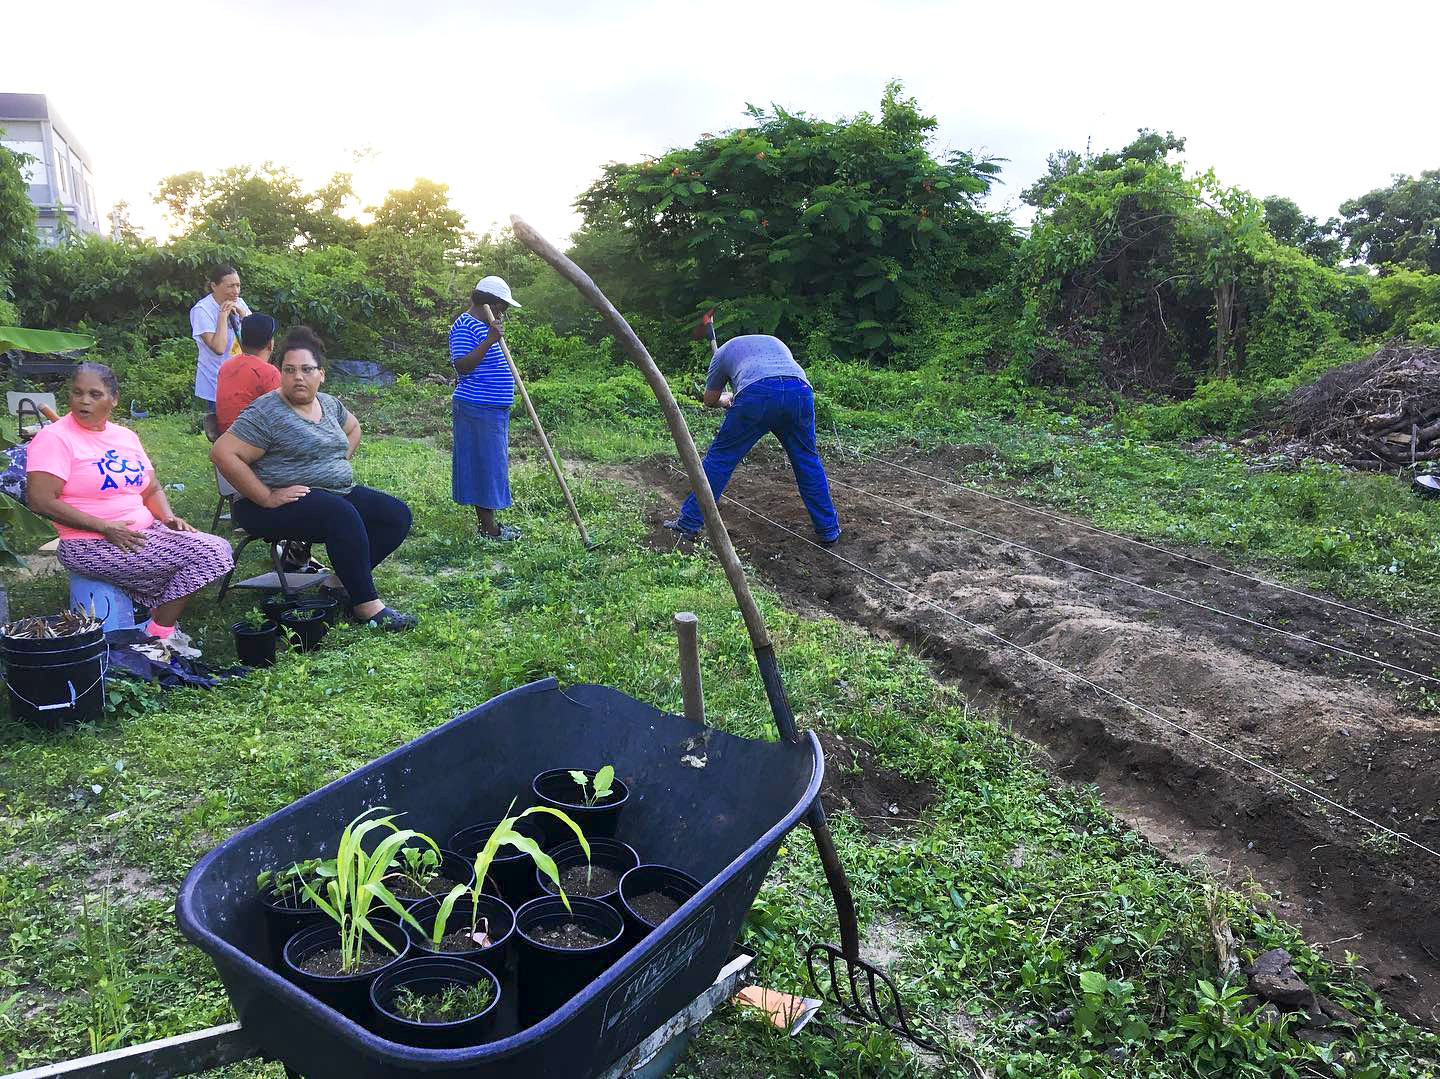 agriculture practices in Vieques, two people are near a soil bed, others are seen in the background. A wheel barrow with potted plants in black plastic planters is in the foreground. A garden hoe leans on the wheel barrow.